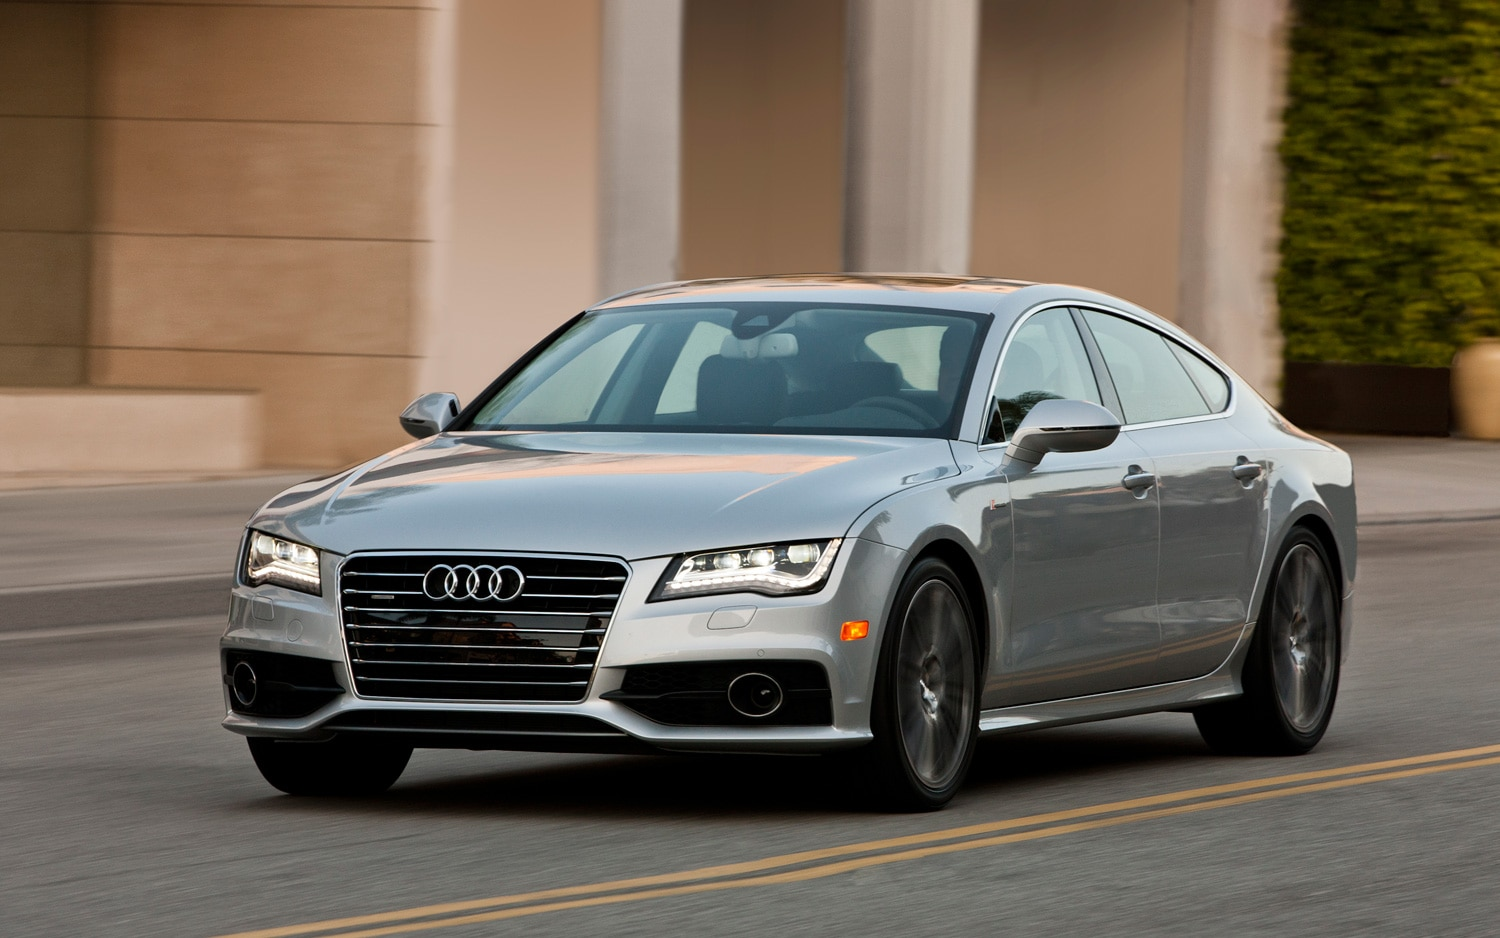 2013 Audi A7 Left Front Angle1